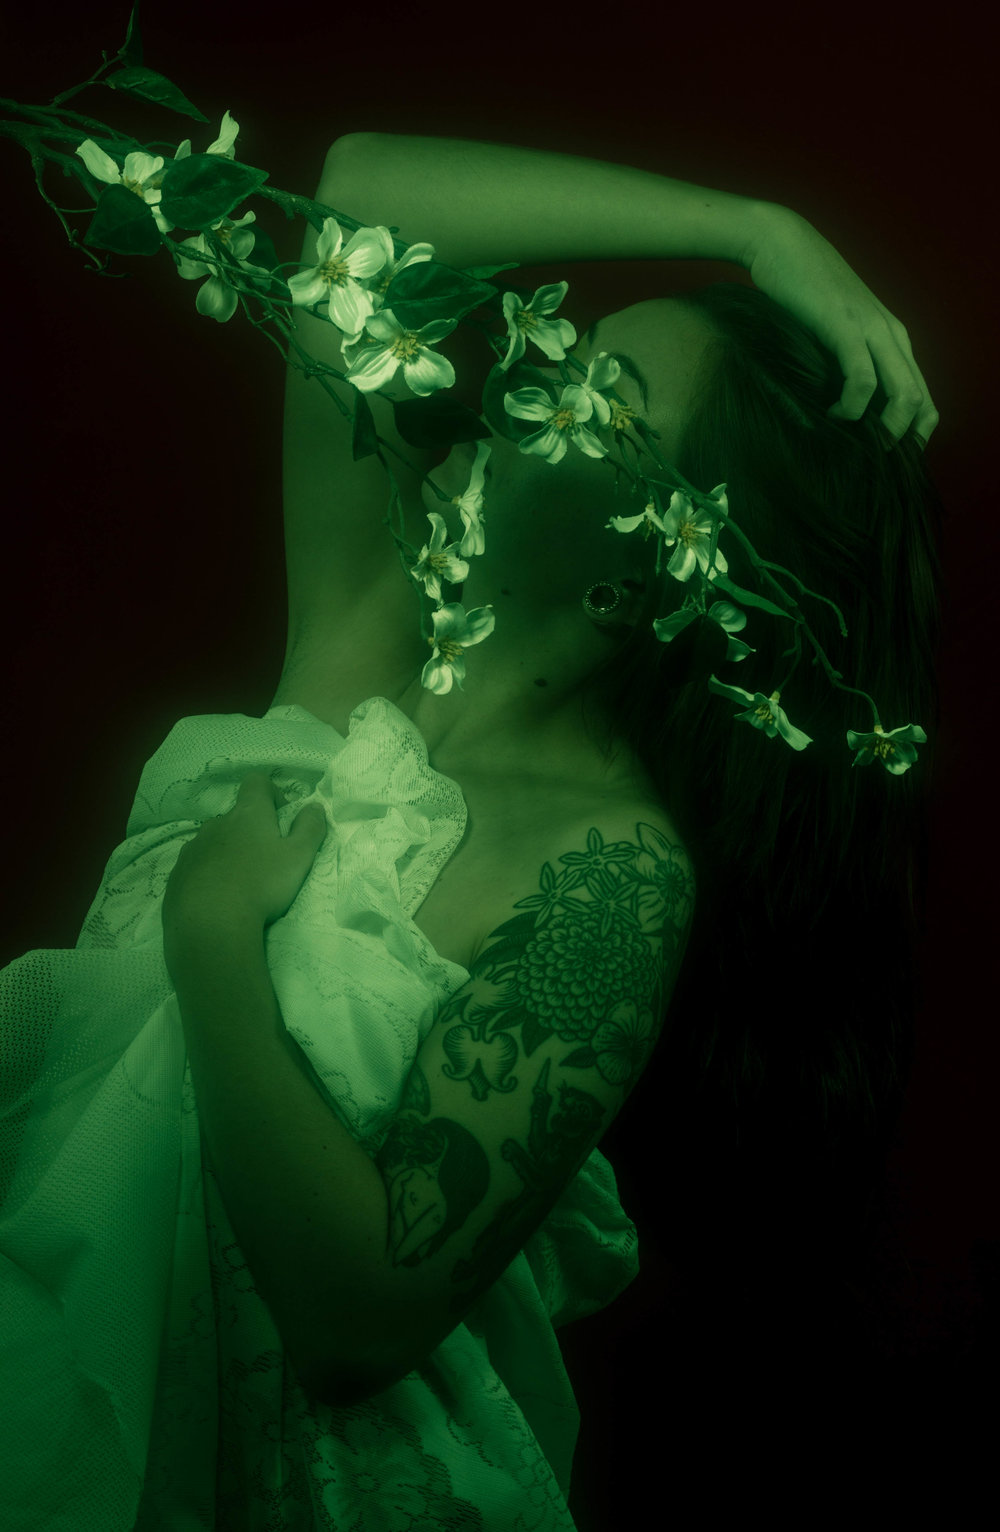 green flower girl.jpg